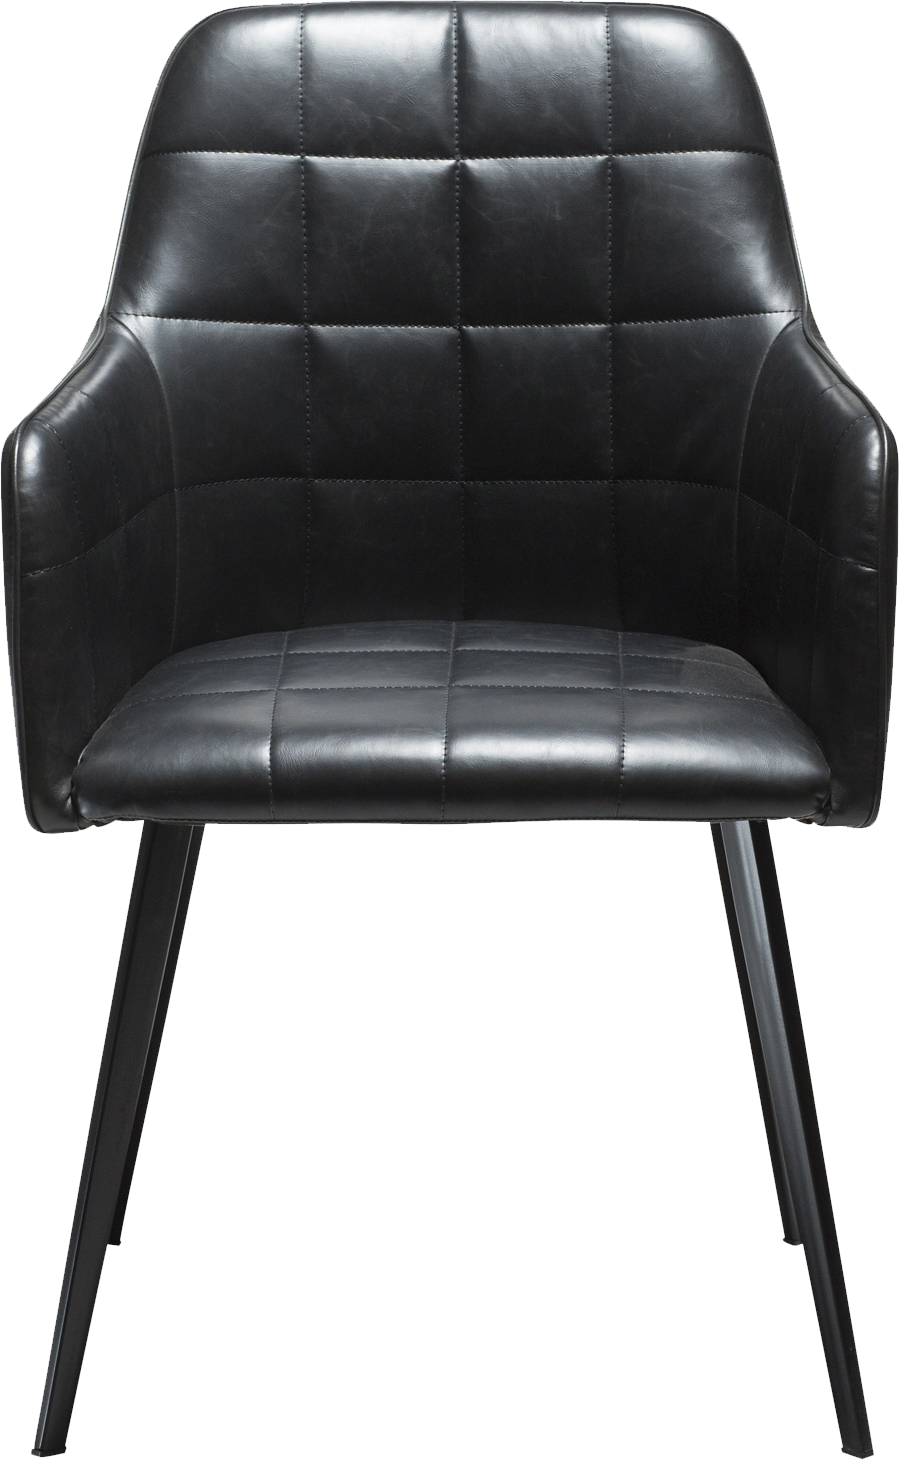 Amazing Danform Embrace Dining Chair In Black Faux Leather With Black Legs Cjindustries Chair Design For Home Cjindustriesco